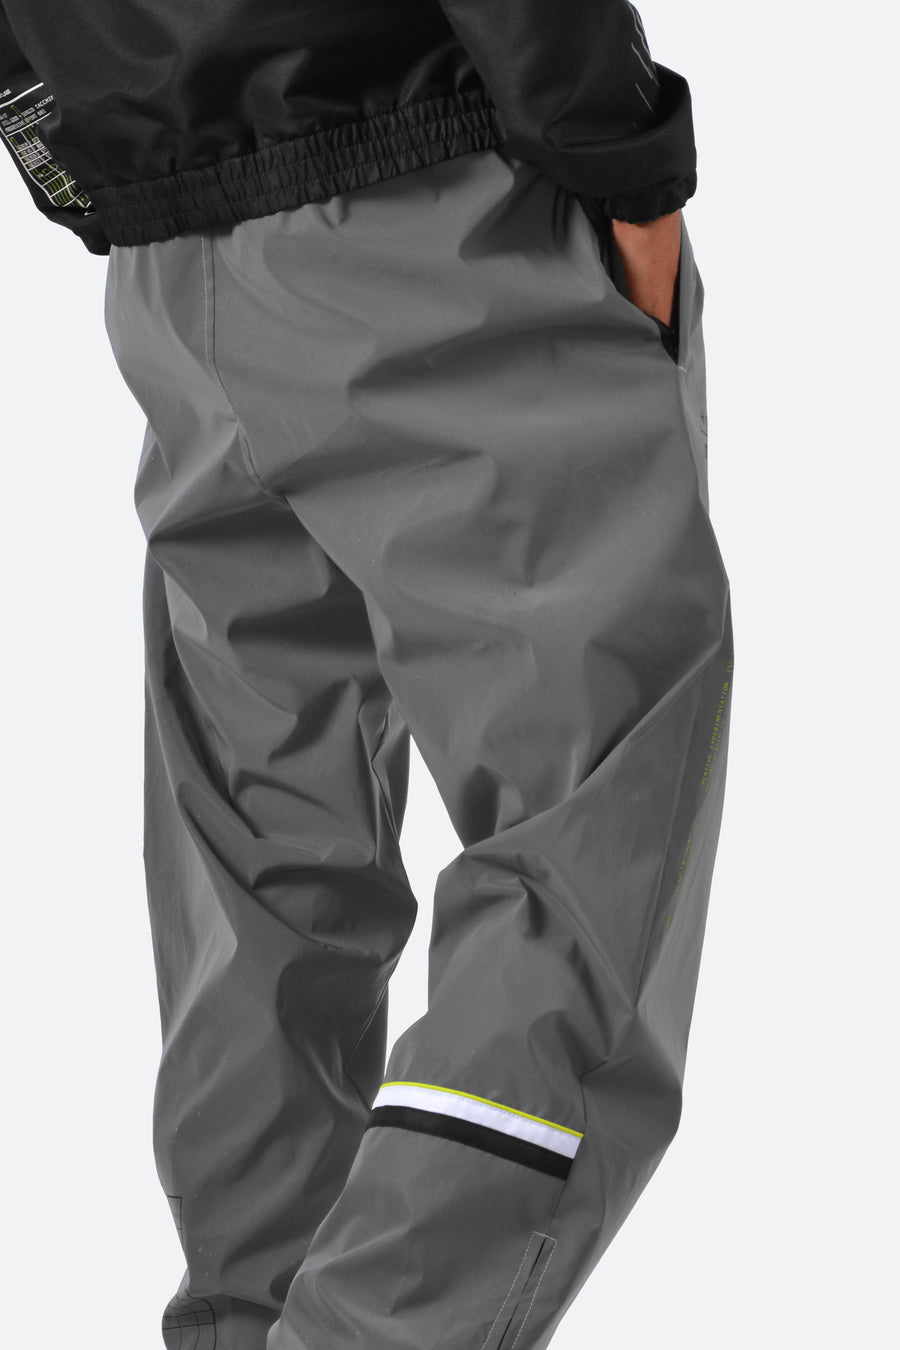 Still Good x Sergio Tacchini Cryo Reflective Track Pants #Grey